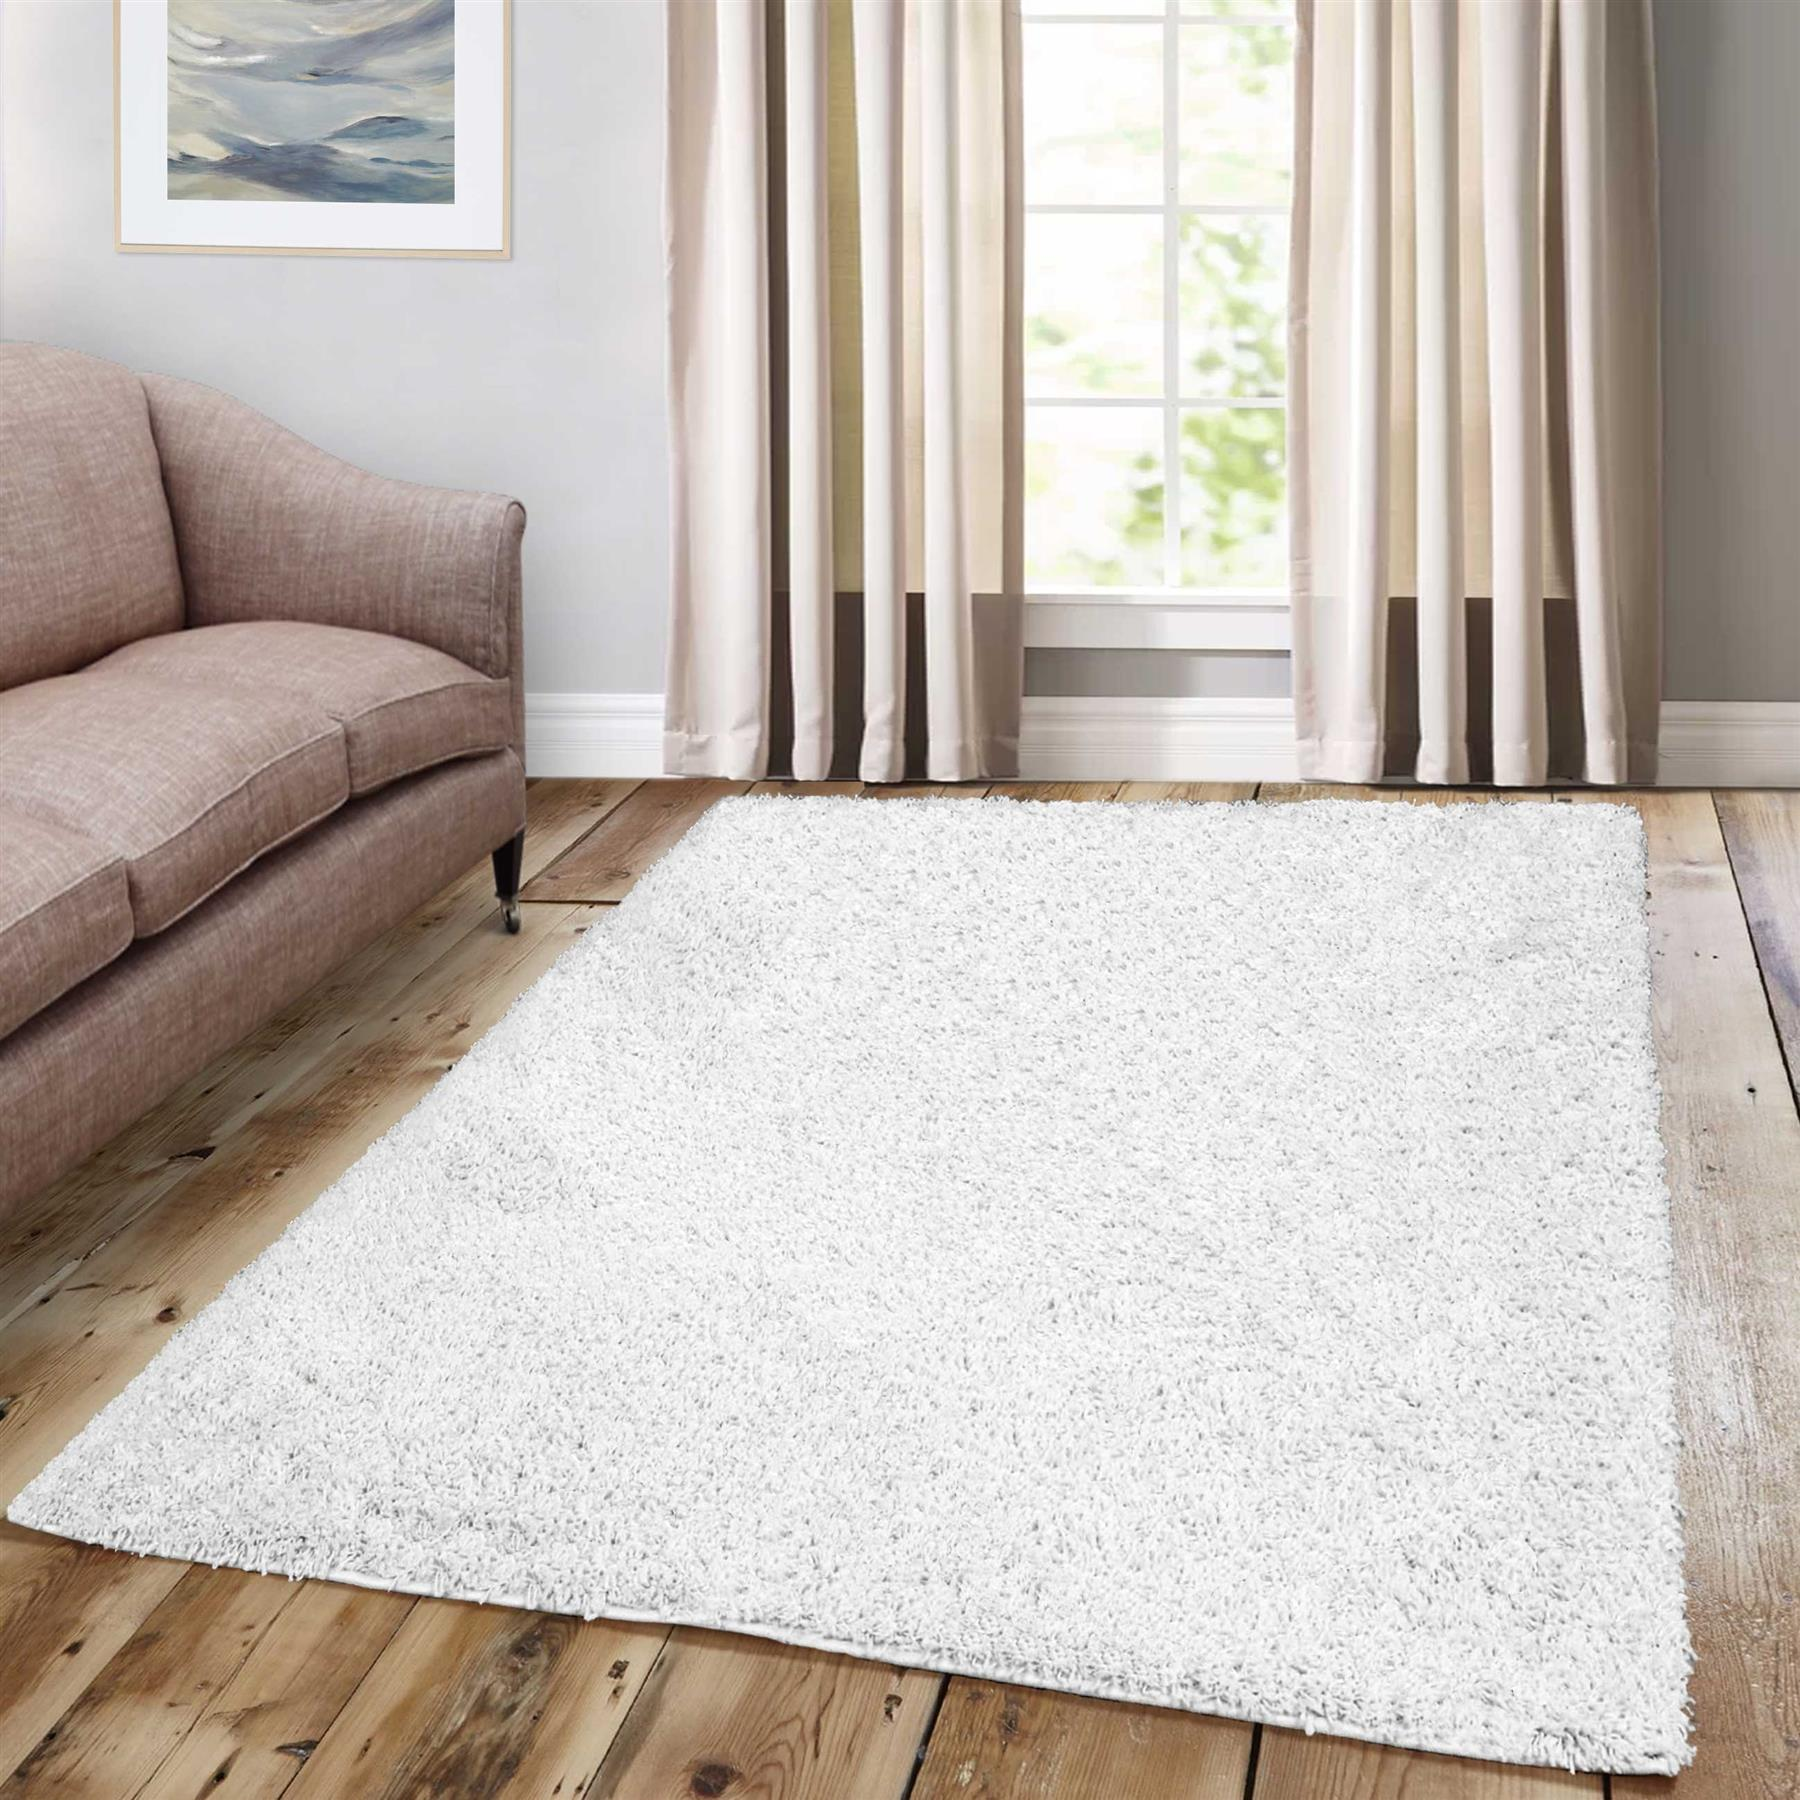 Details About Plain White Thick Luxury Soft Shag Rugs Fluffy Modern Dining Room Area Carpets